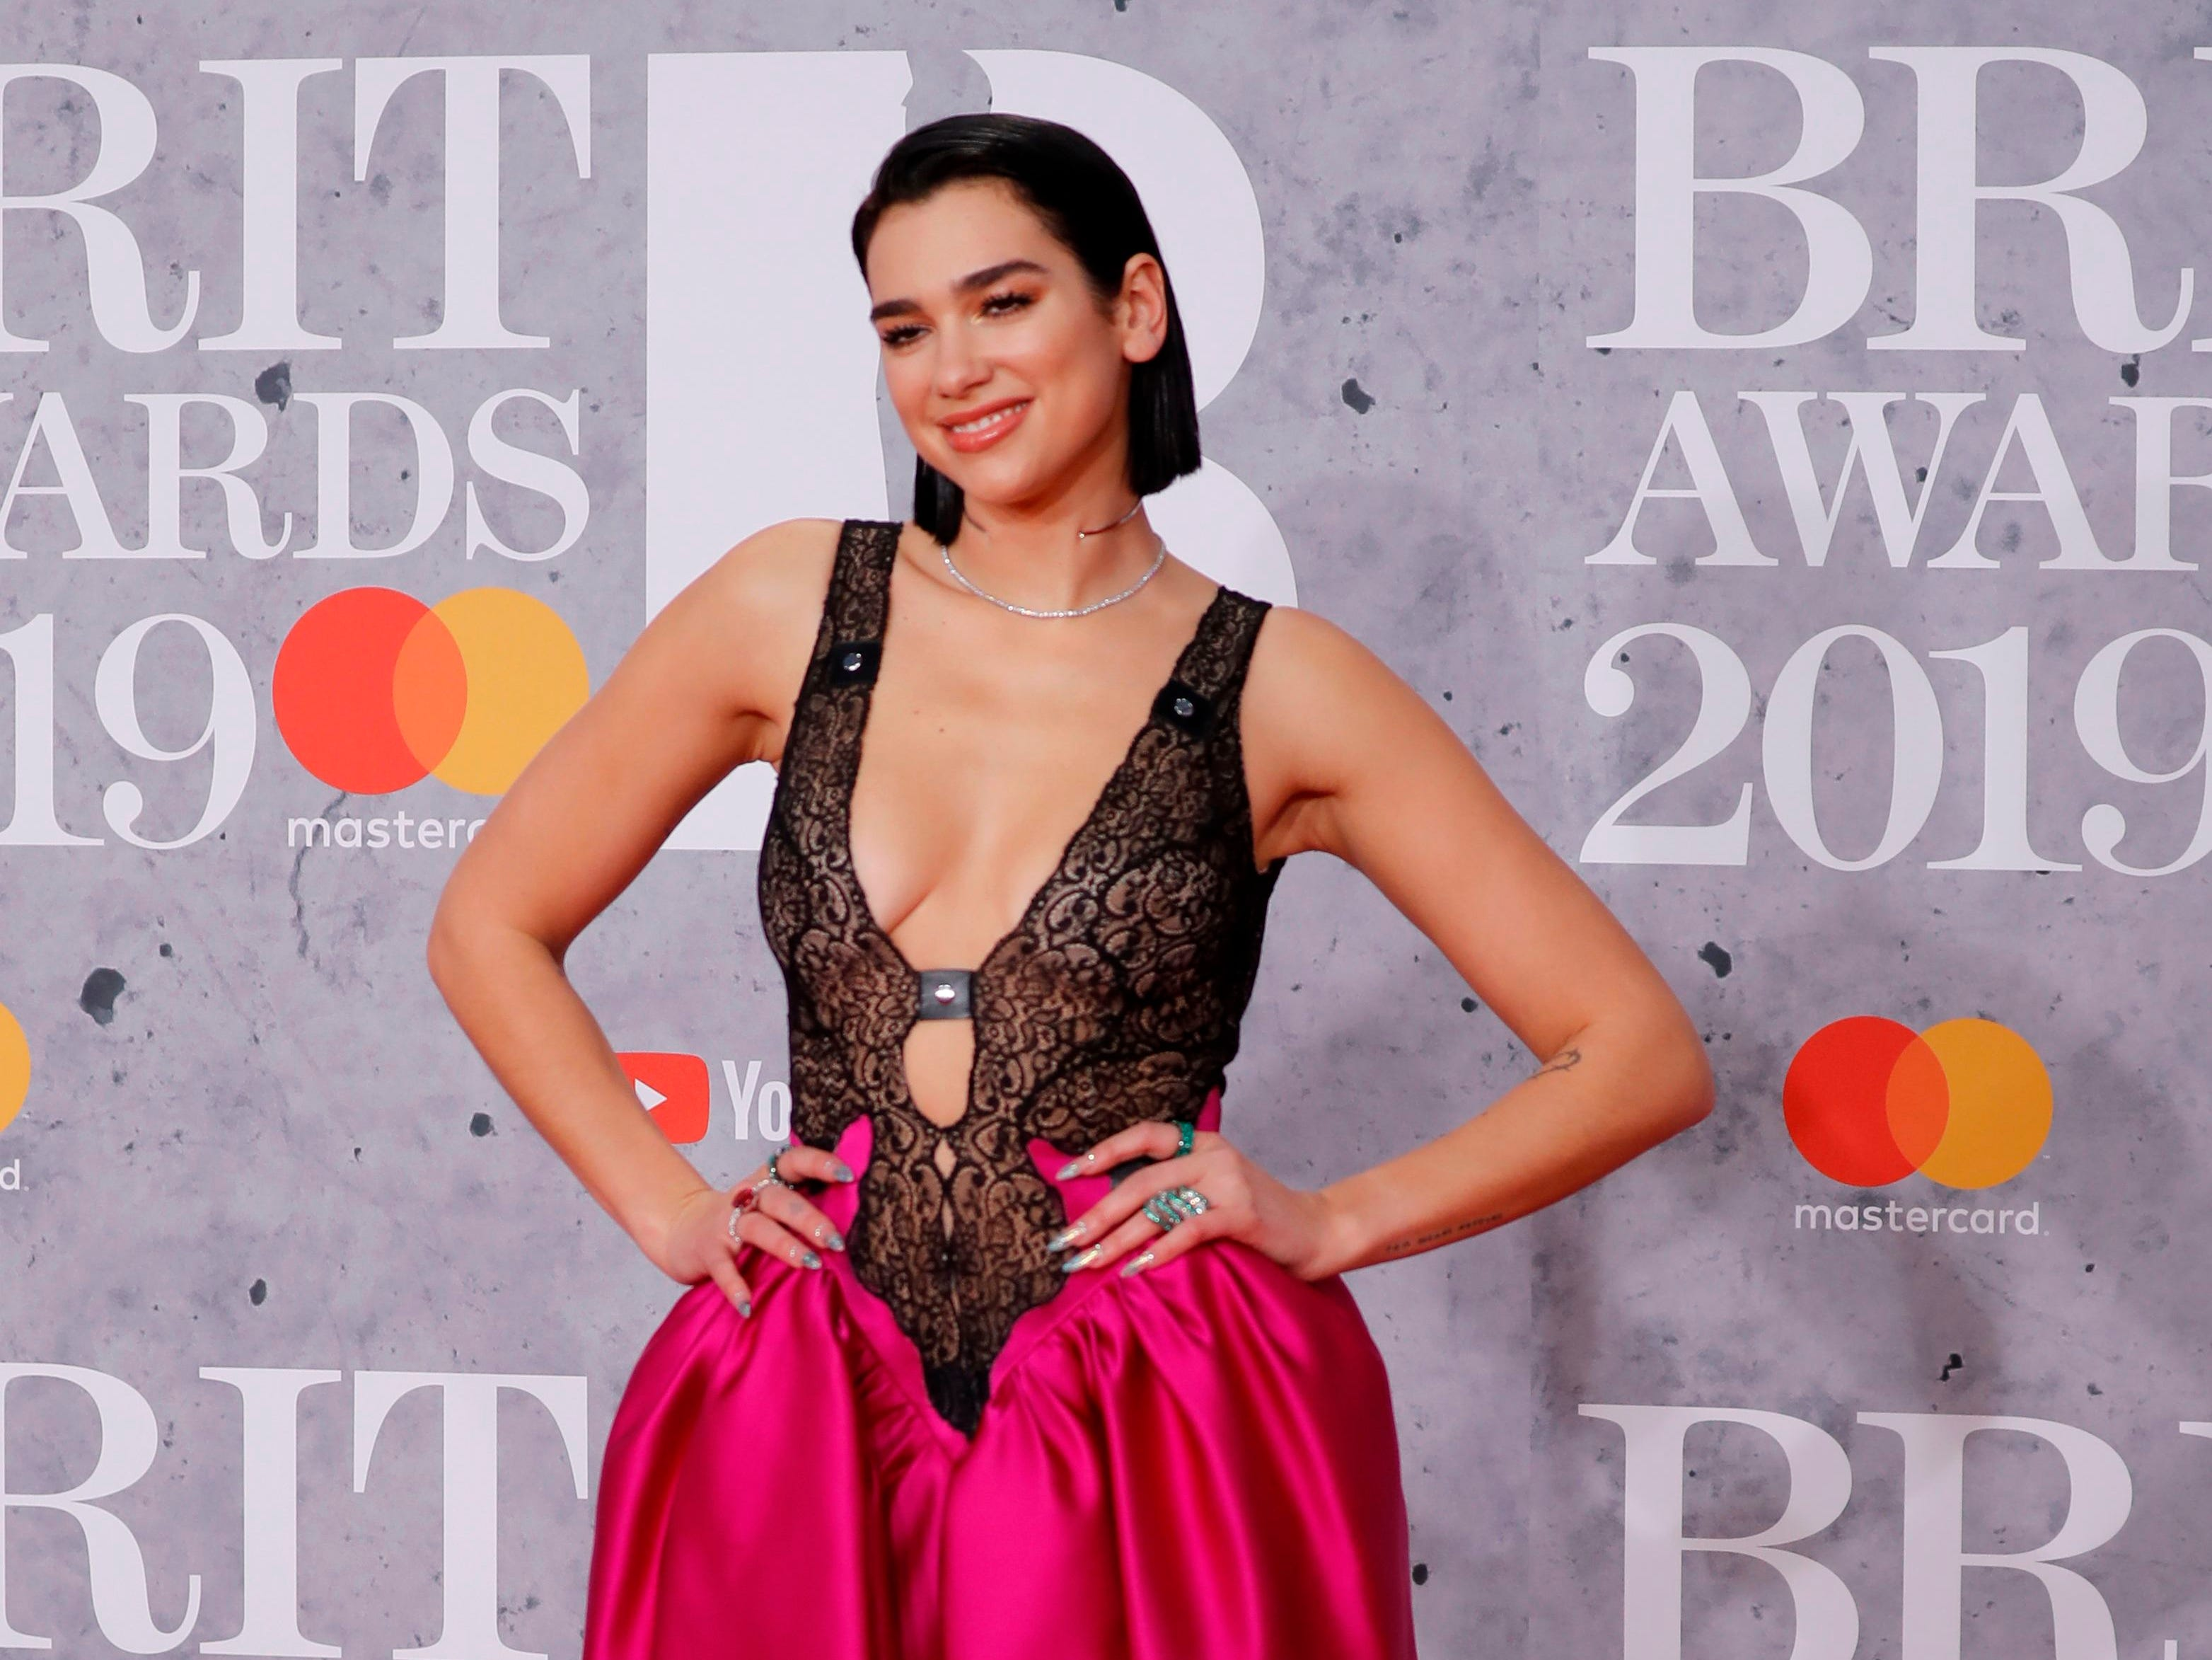 British singer-songwriter Dua Lipa poses on the red carpet on arrival for the BRIT Awards 2019 in London on February 20, 2019. (Photo by Tolga AKMEN / AFP) / RESTRICTED TO EDITORIAL USE  NO POSTERS  NO MERCHANDISE NO USE IN PUBLICATIONS DEVOTED TO ARTISTSTOLGA AKMEN/AFP/Getty Images ORIG FILE ID: AFP_1DO108